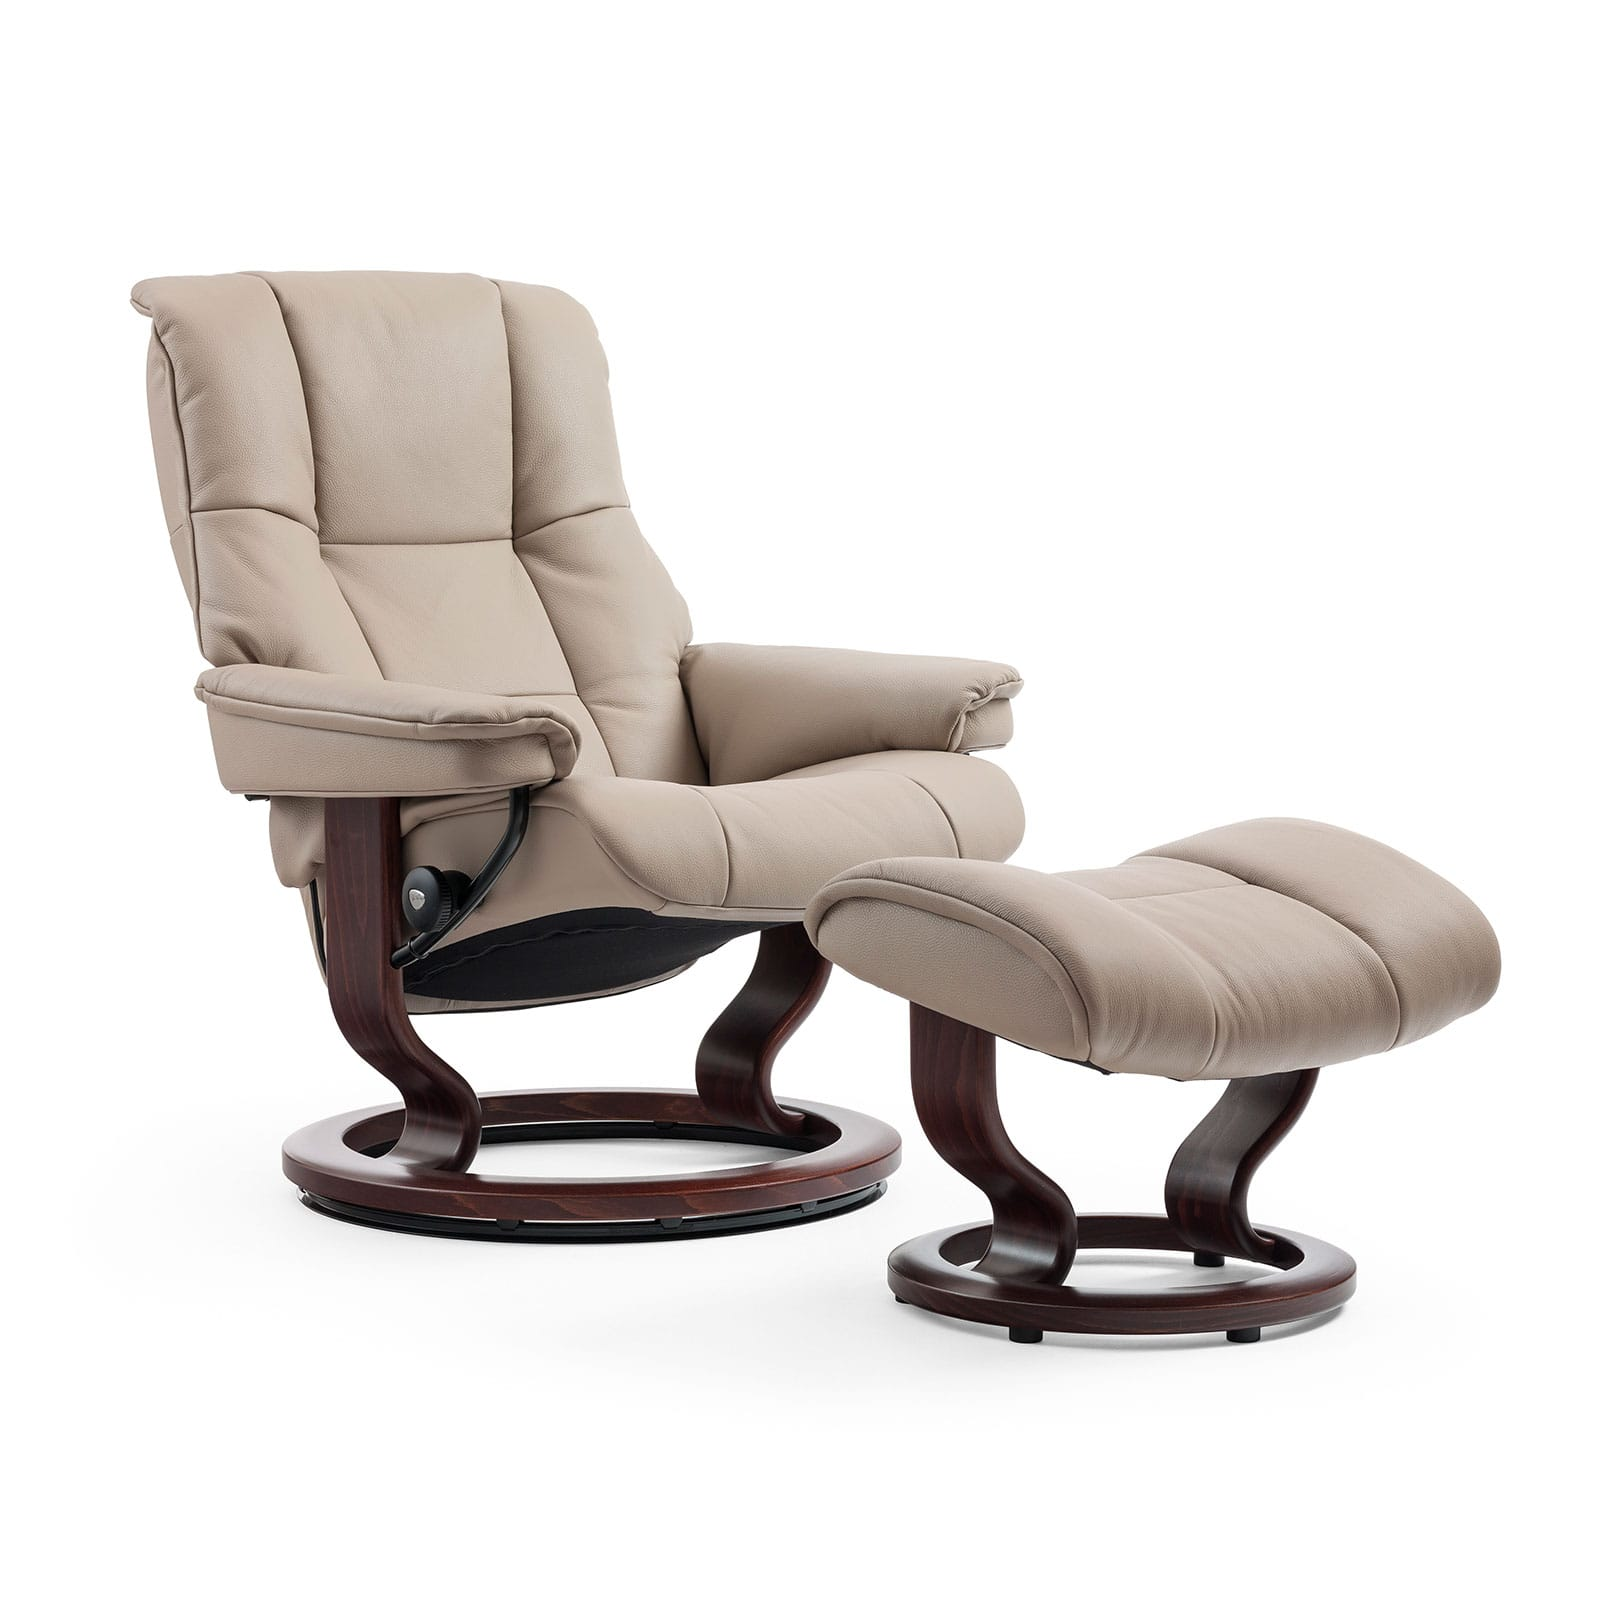 Stressless Sessel Berlin Stressless Sessel Mayfair Cori Beige Classic Braun Hocker